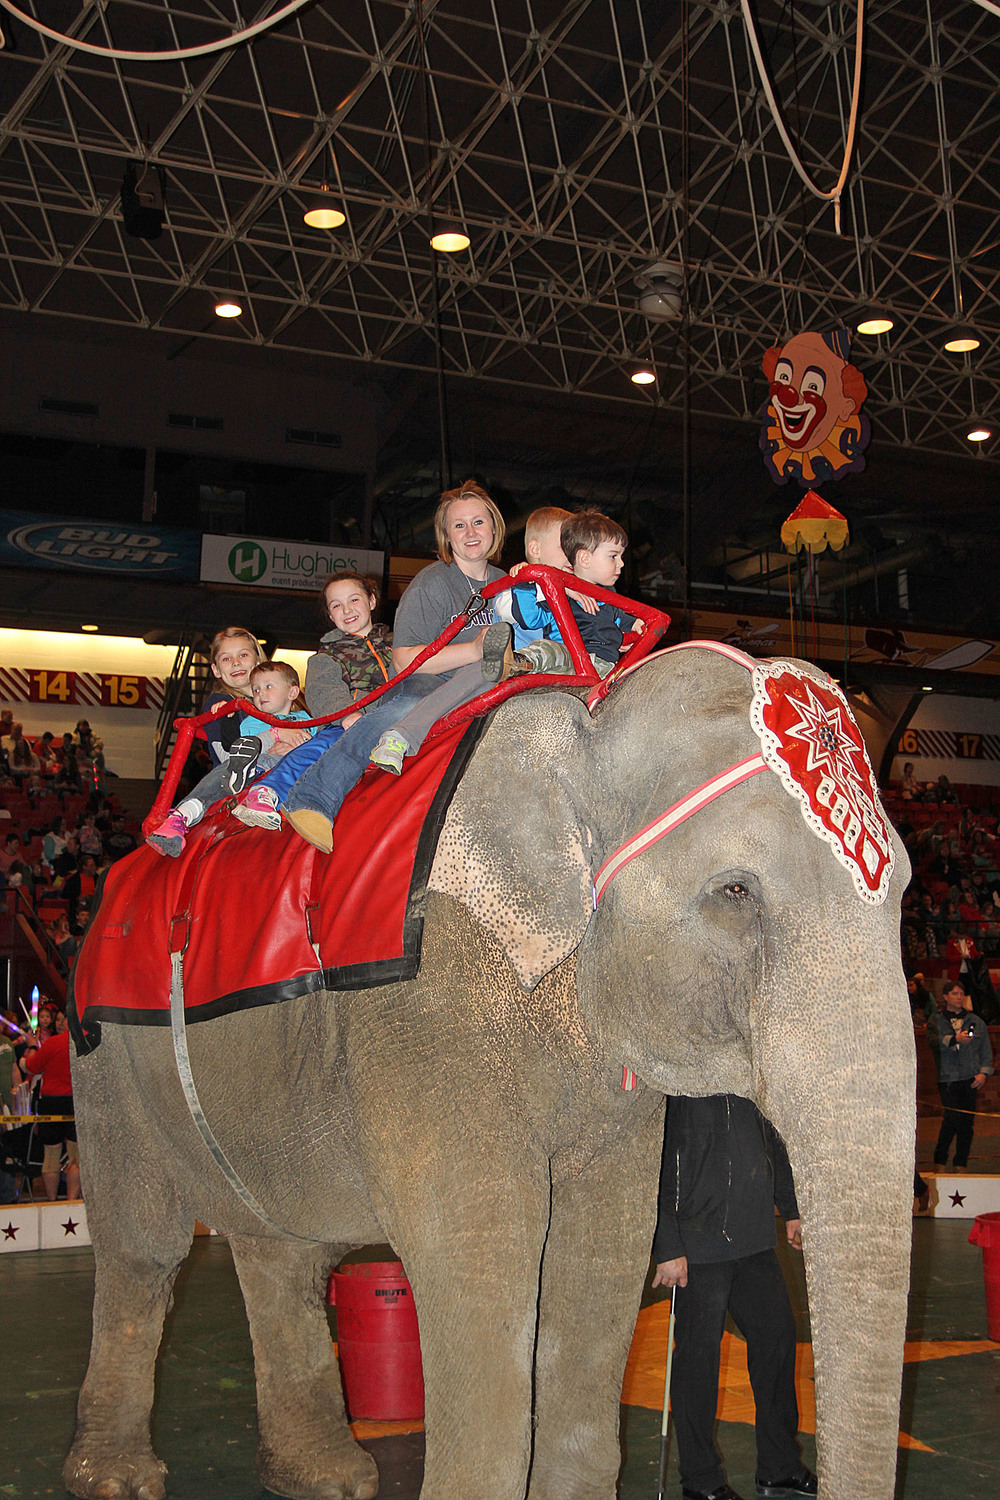 Regardless of your age, everybody is ready to ride an elephant (or a pony)! Family fun at its best at the Tadmor Shrine Circus.